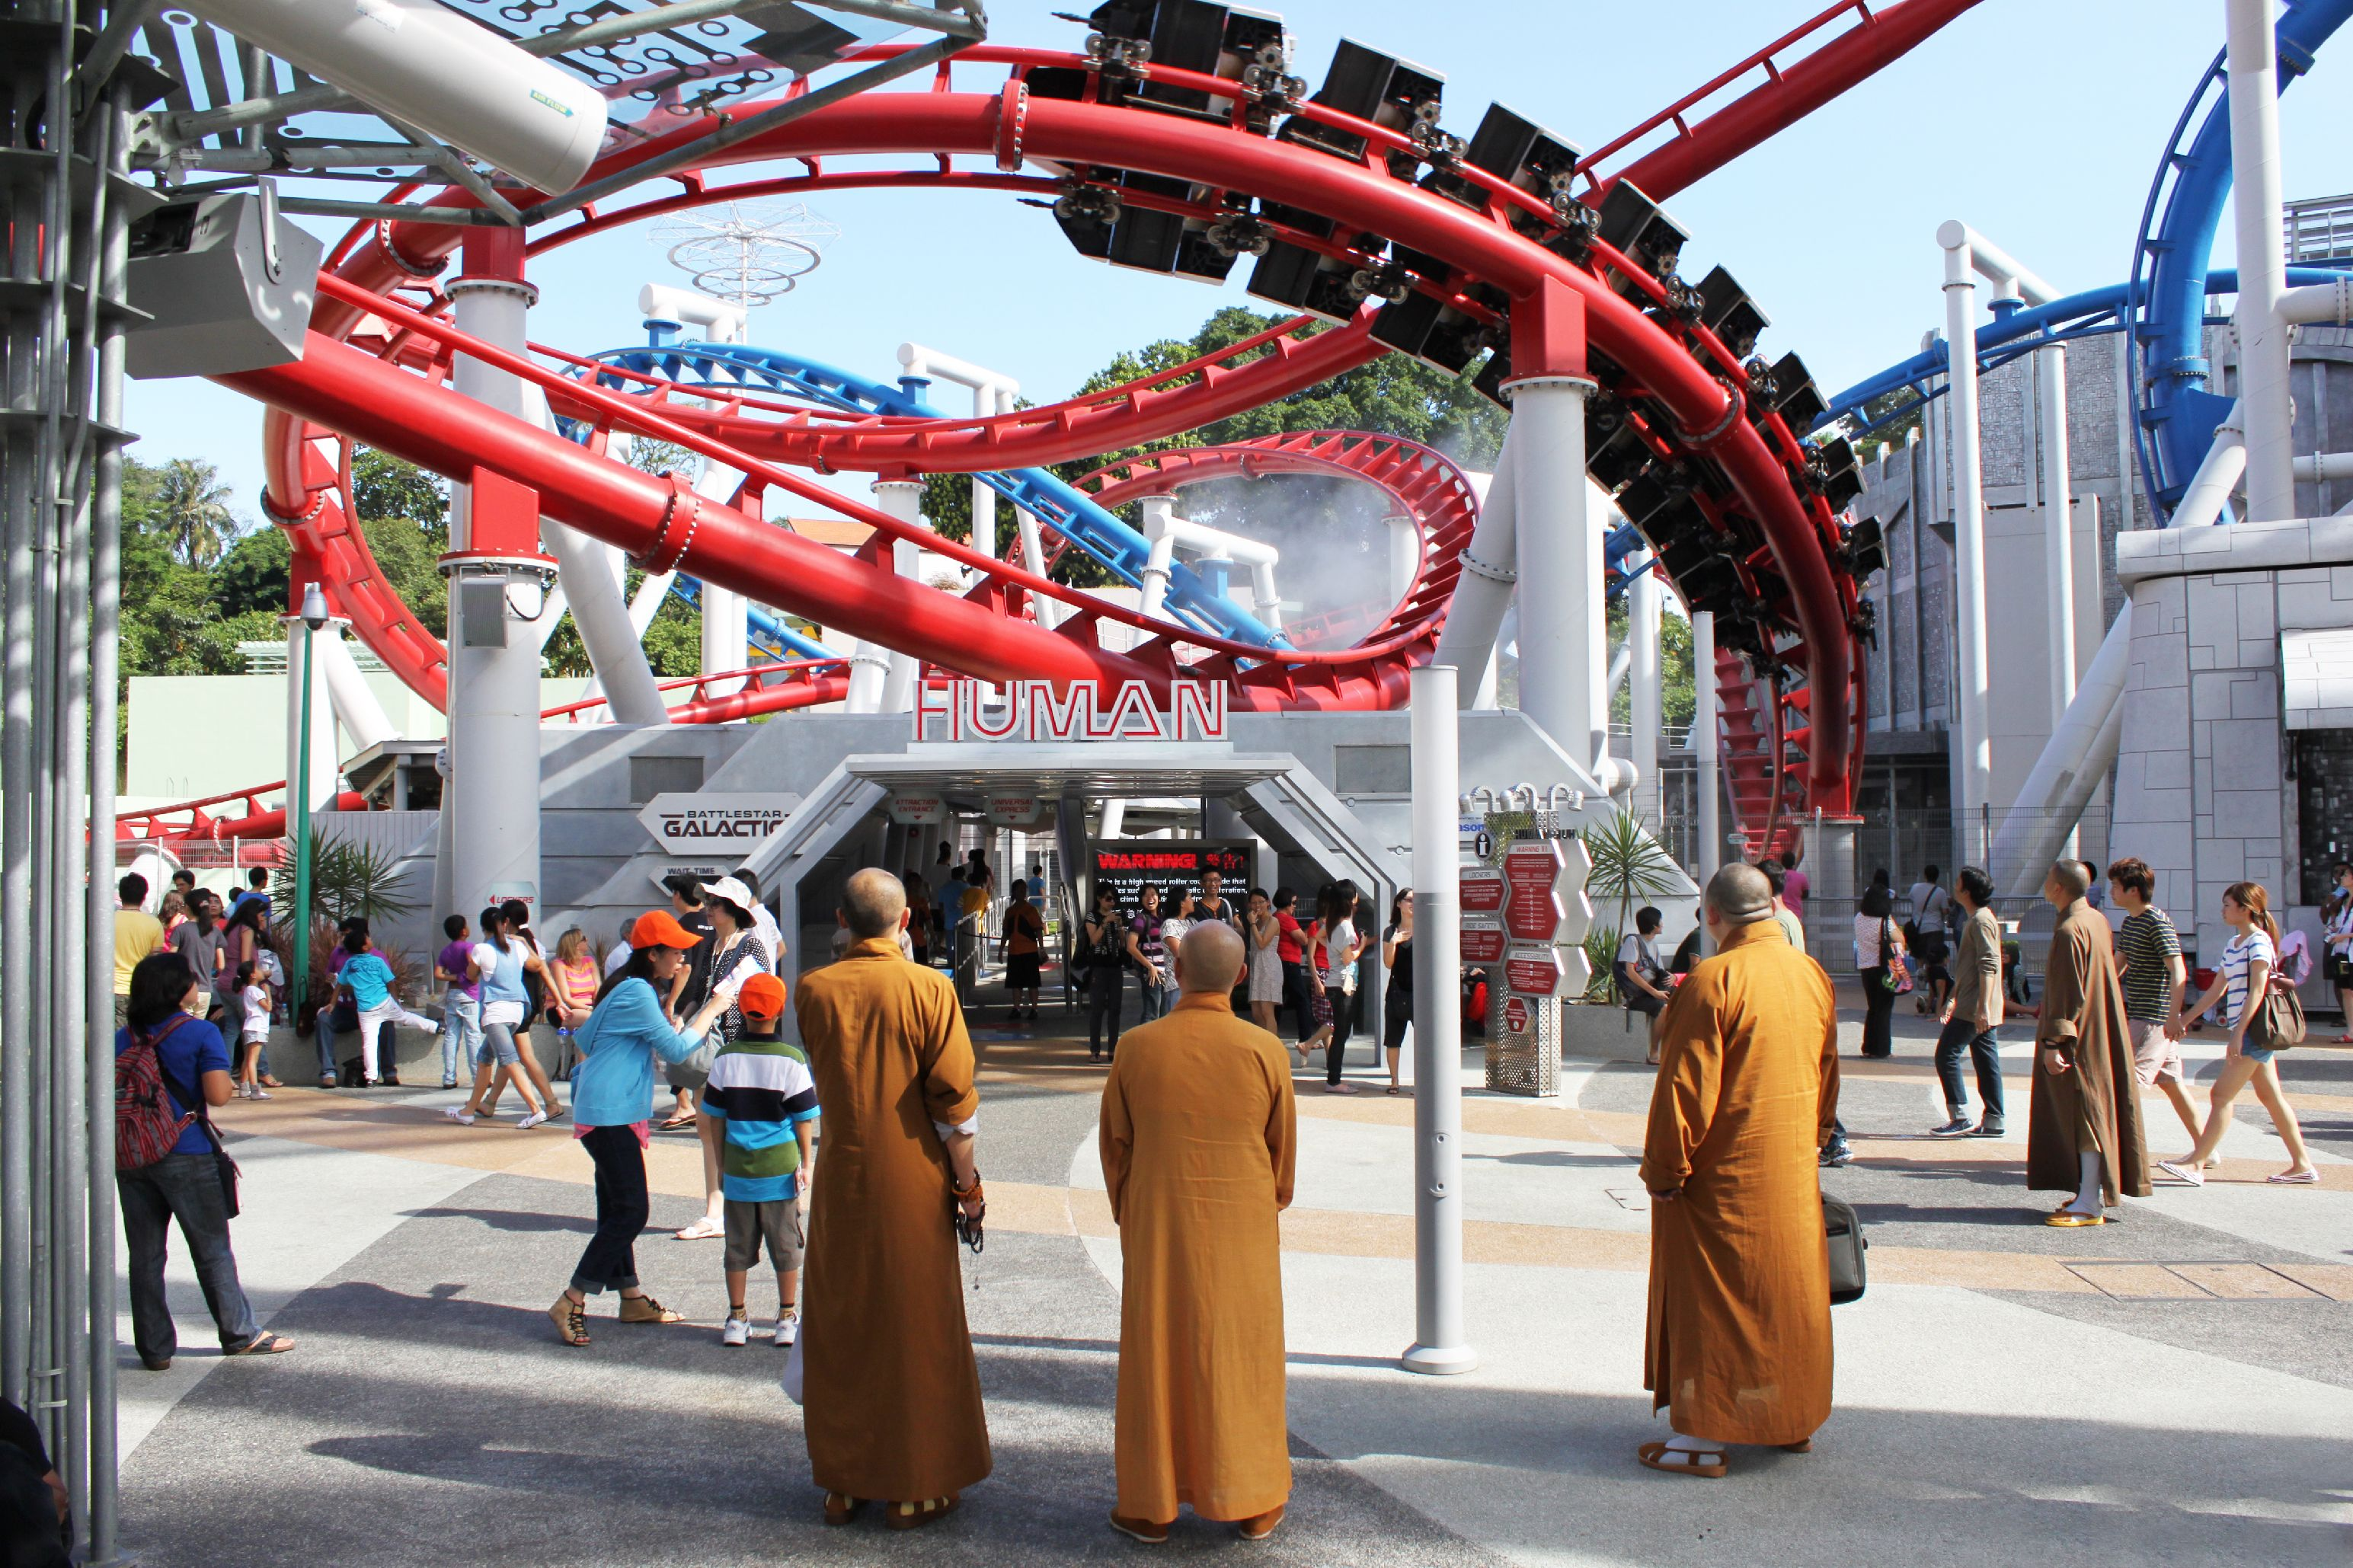 monks in front of roller coaster ashton morris